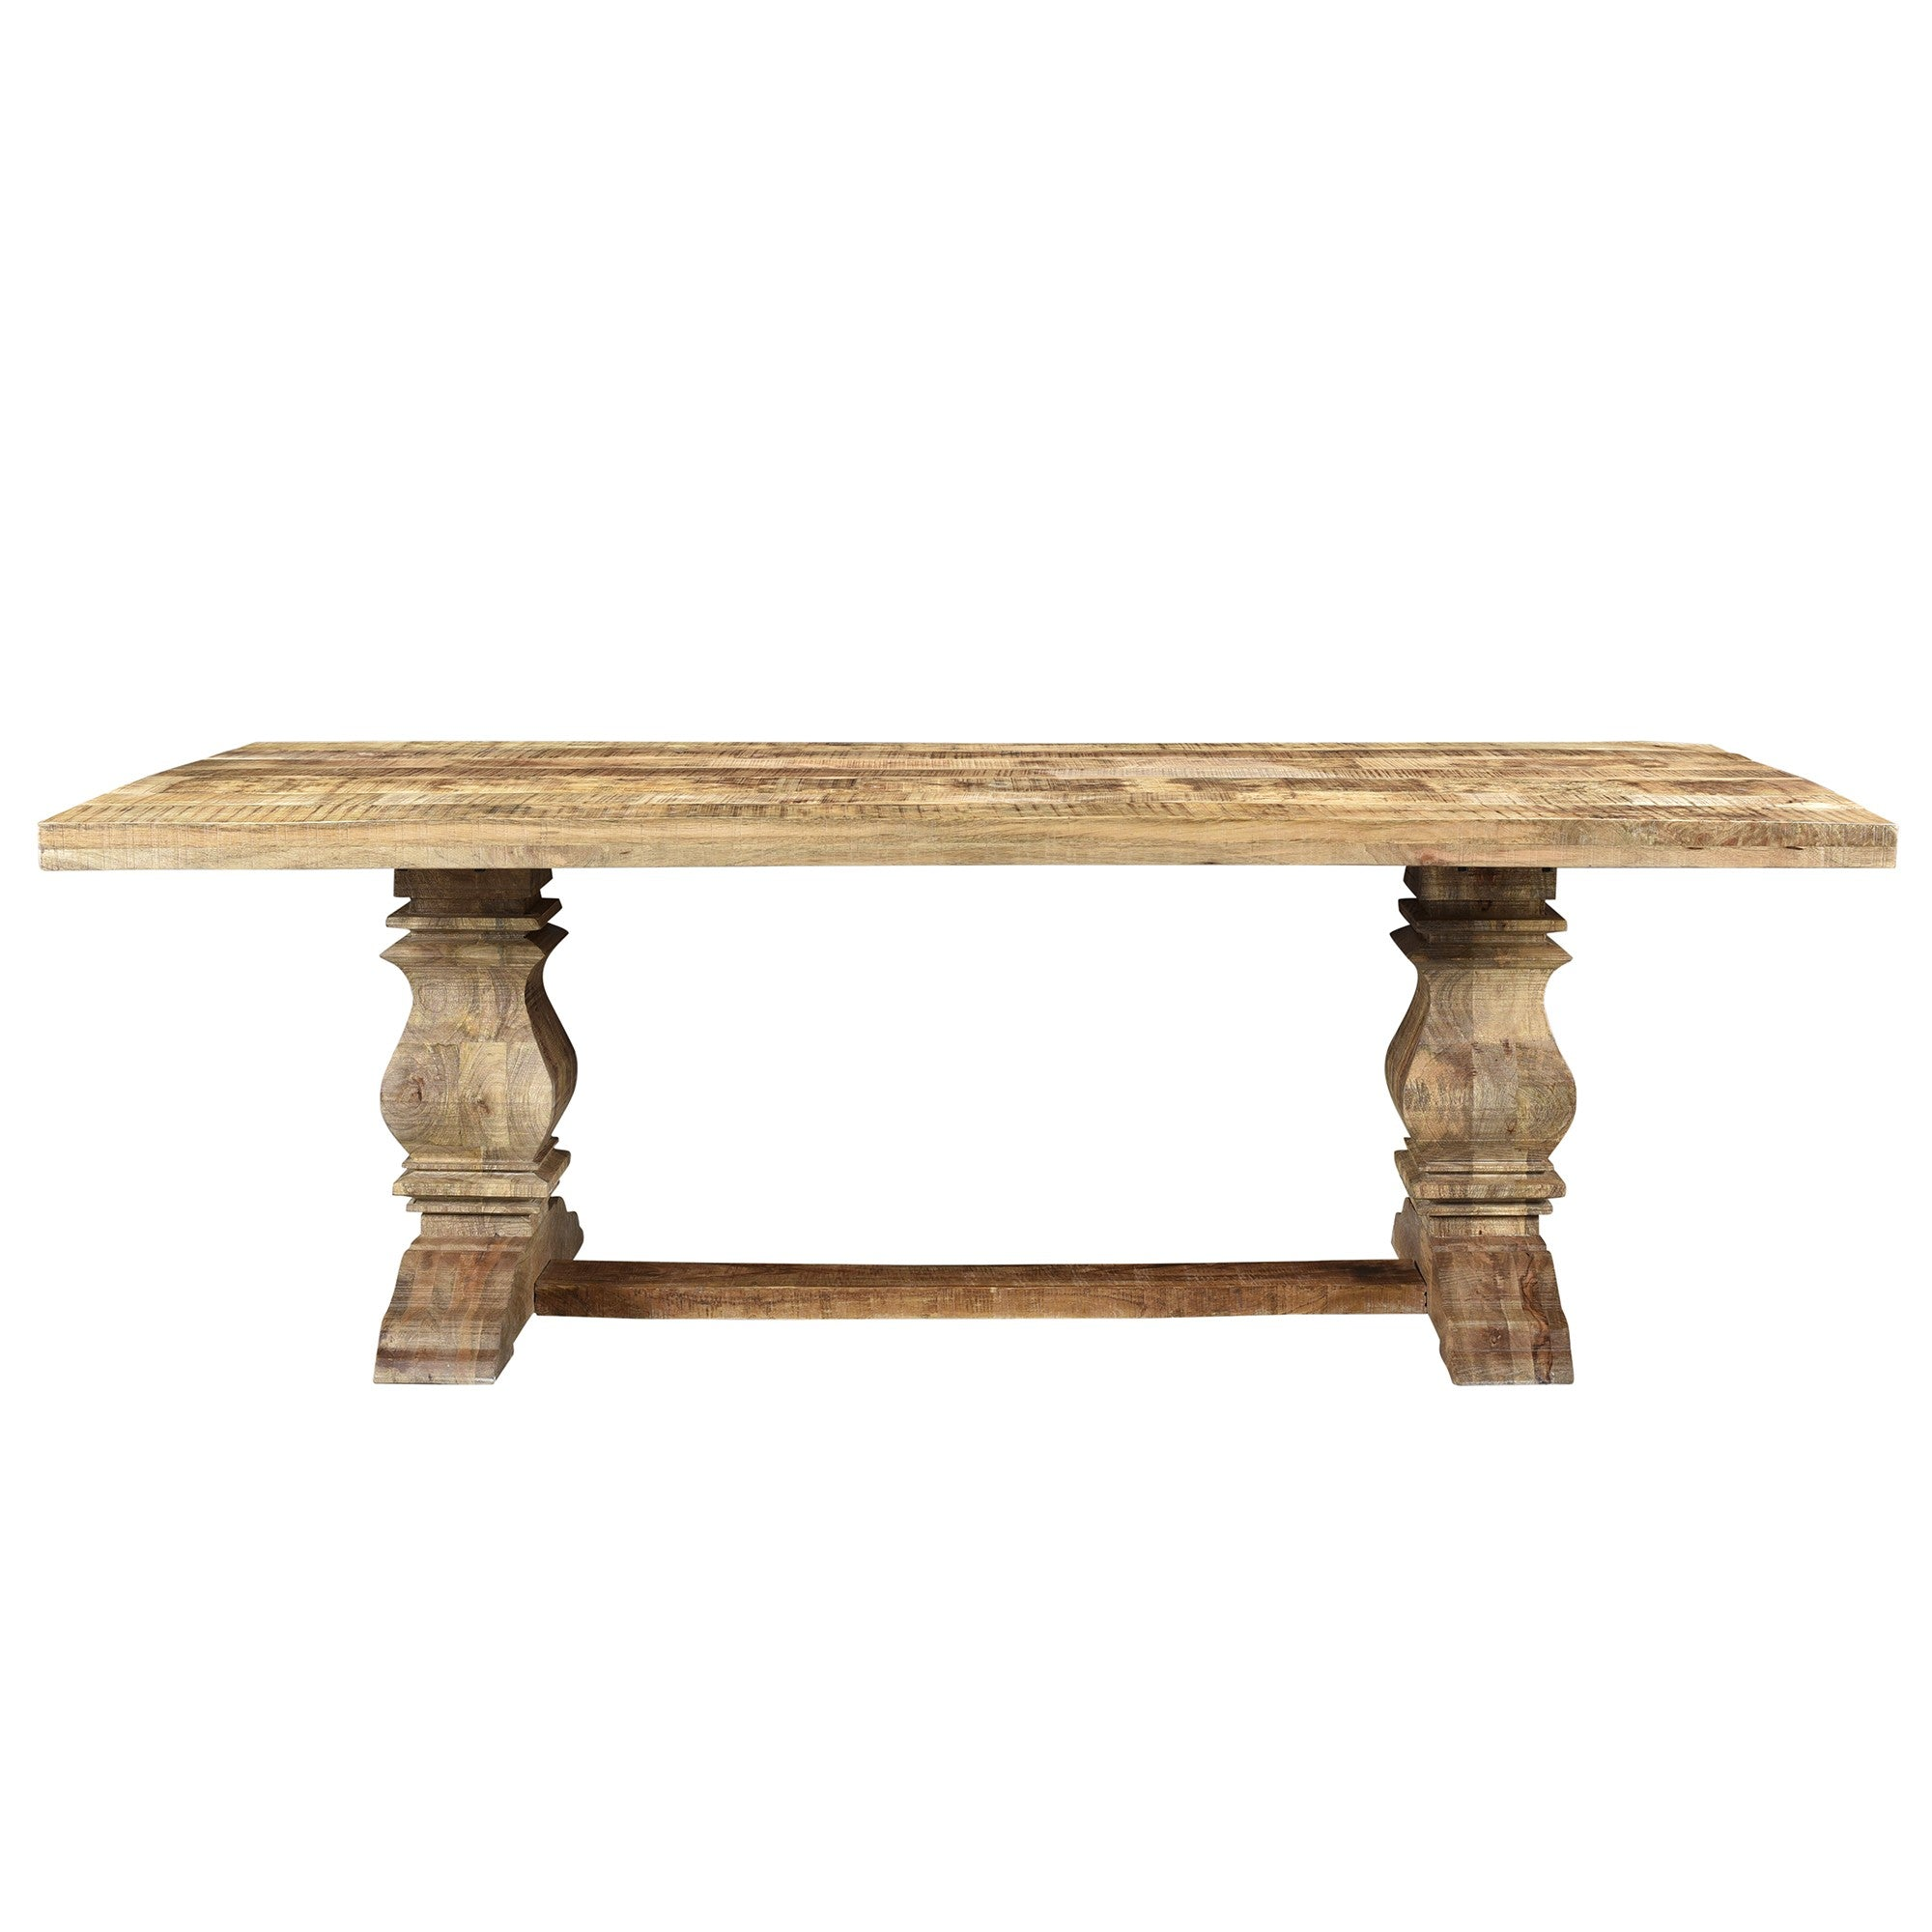 Takhur Dining Table in Natural